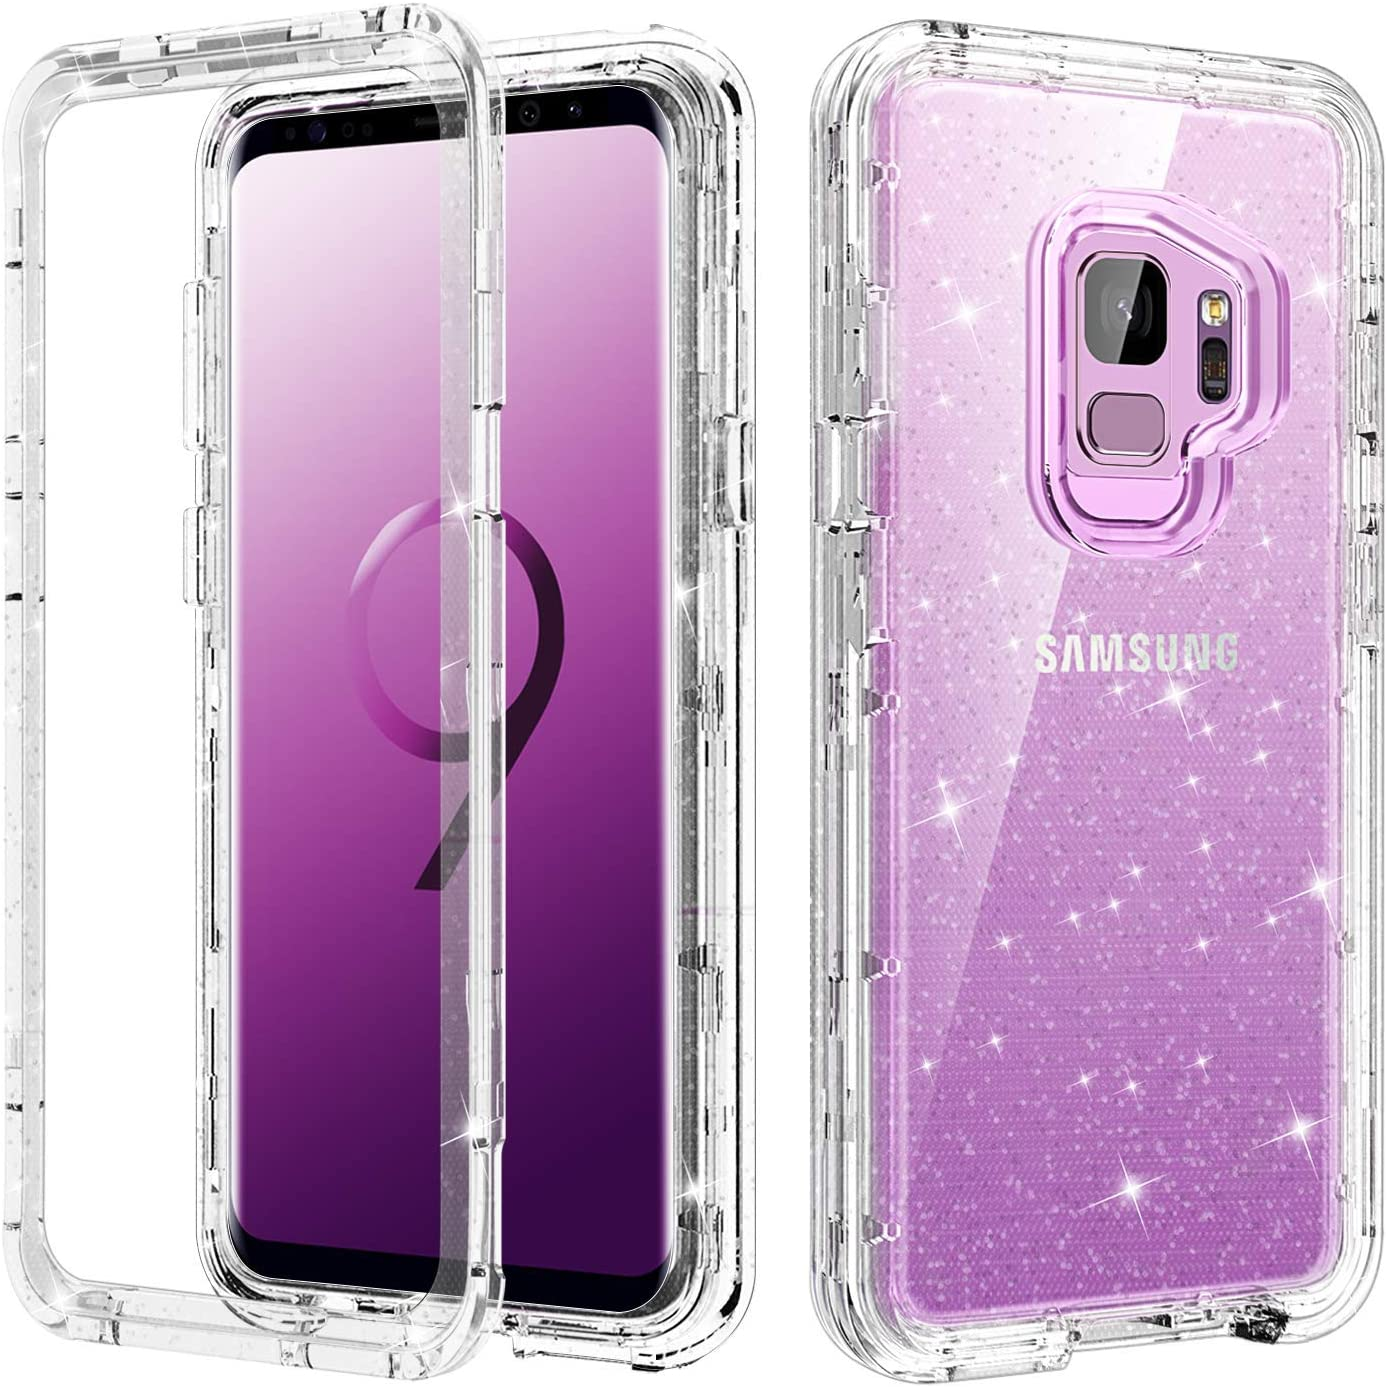 YINLAI Galaxy S9 Case,Clear Glitter 3 in 1 Heavy Duty Shockproof Hybrid Transparent Hard PC Soft TPU Bumper Full Body Protective Phone Case for Samsung S9 for Women Girls,Clear